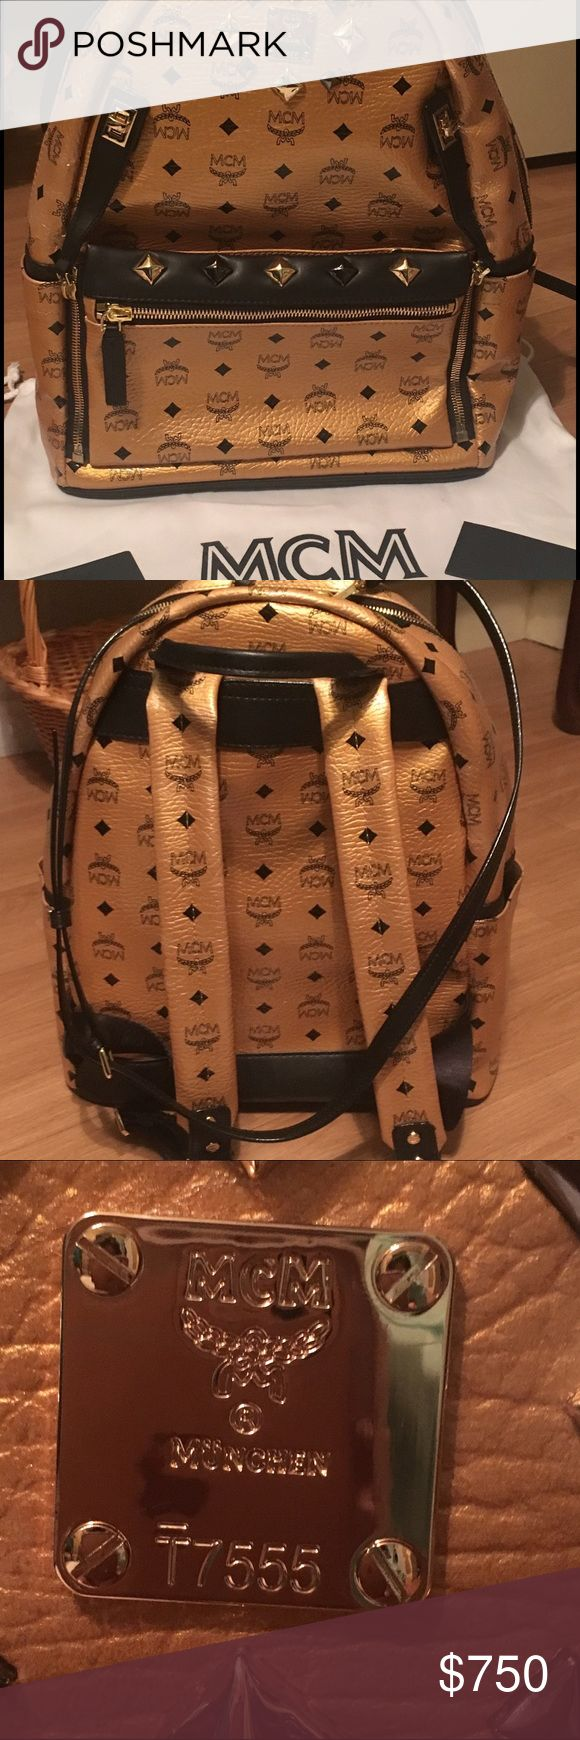 NWT MCM Backpack Authentic MCM cognac large backpack. Has detachable pouch on the front and long detachable strap. Never used.  Comes with dust bag and authenticity card. MCM Bags Backpacks